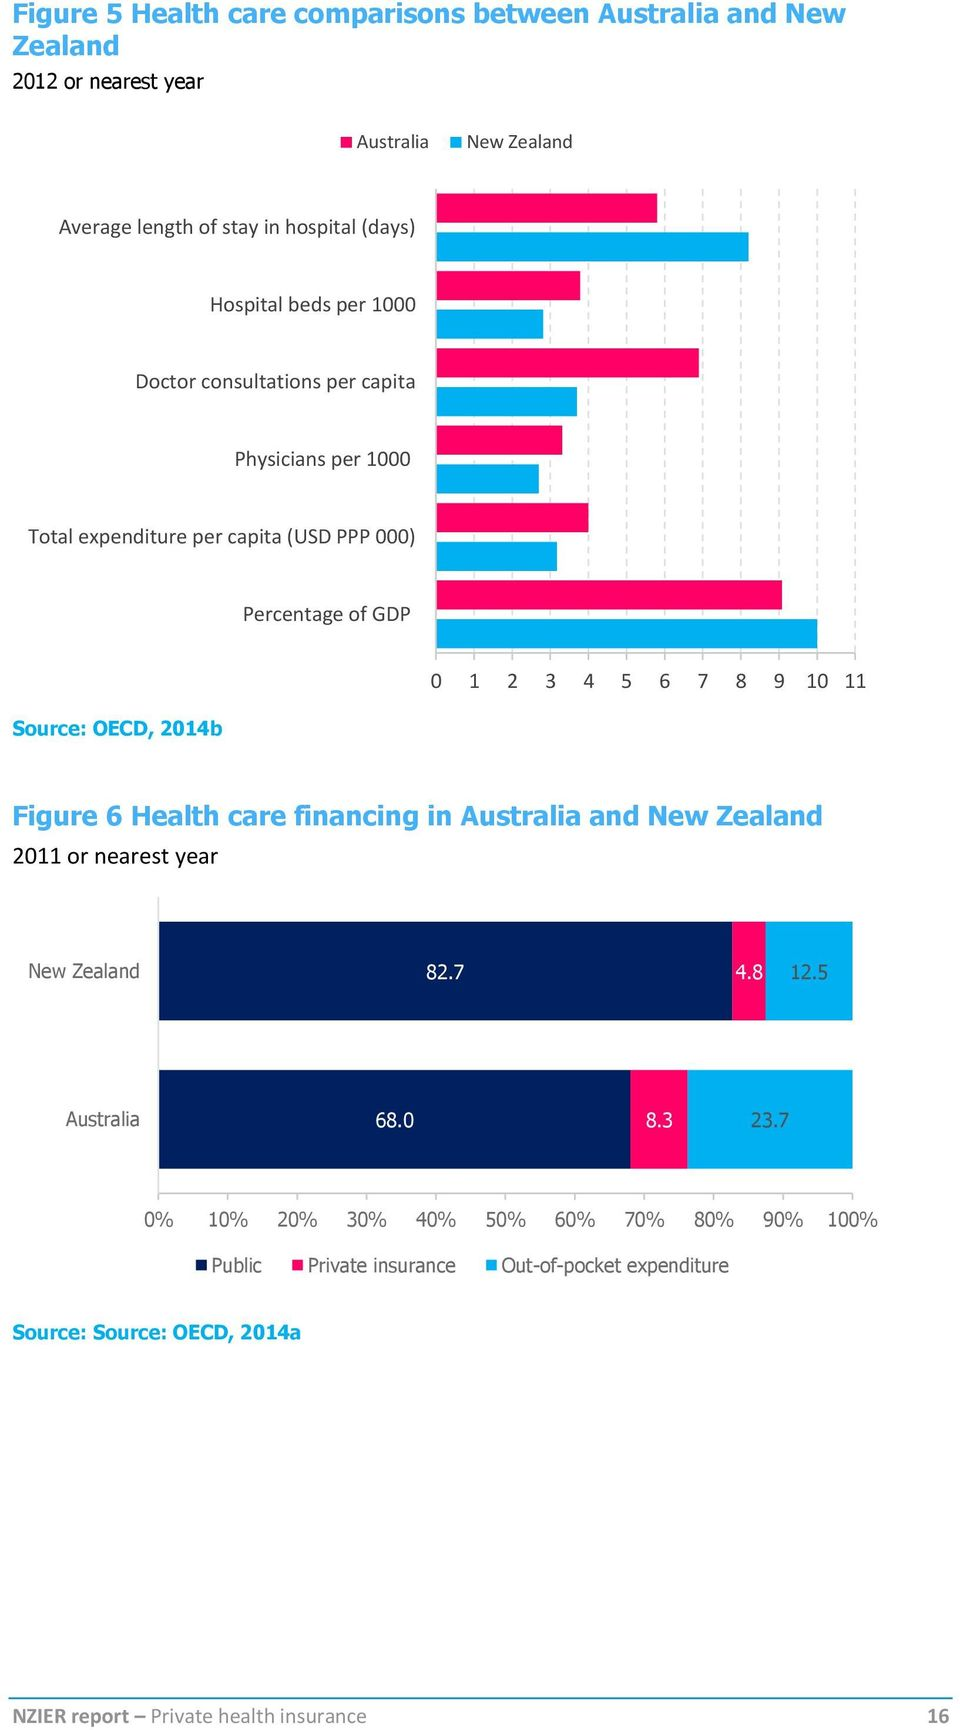 10 11 Source: OECD, 2014b Figure 6 Health care financing in Australia and New Zealand 2011 or nearest year New Zealand 82.7 4.8 12.5 Australia 68.0 8.3 23.